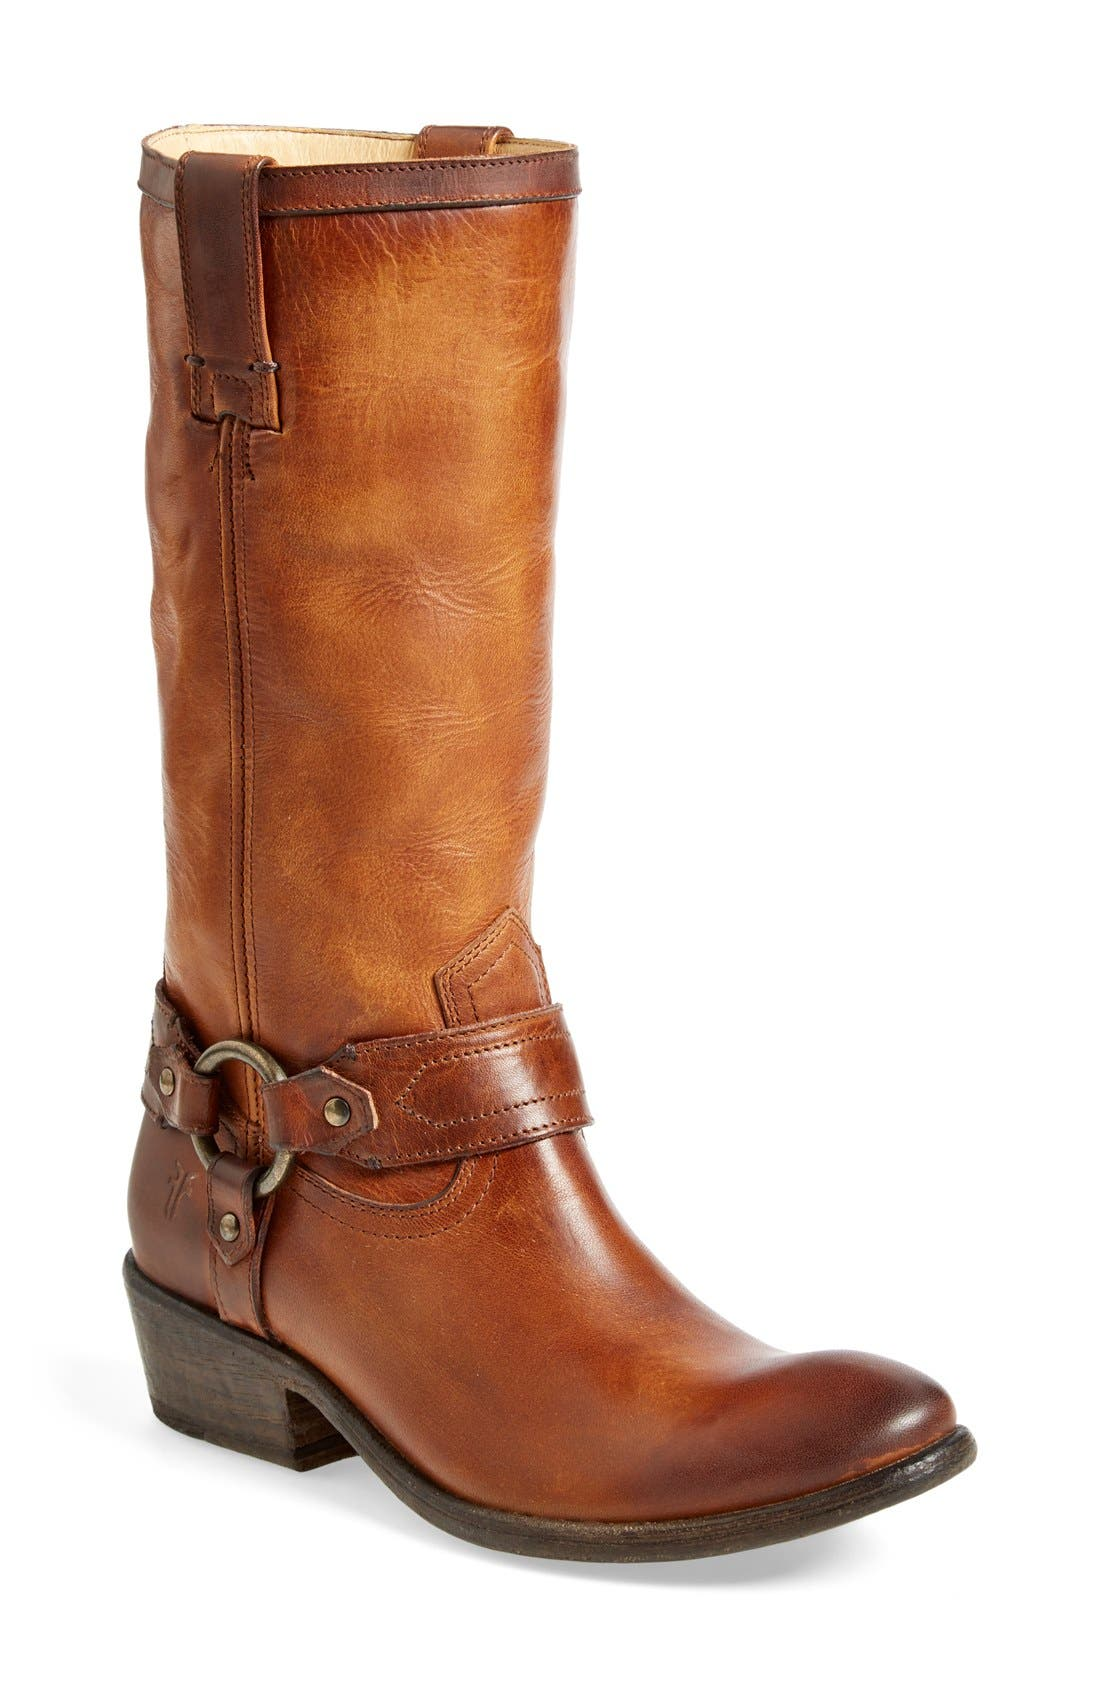 'Carson Harness' Western Mid Calf Riding Boot,                             Main thumbnail 1, color,                             Cognac Leather